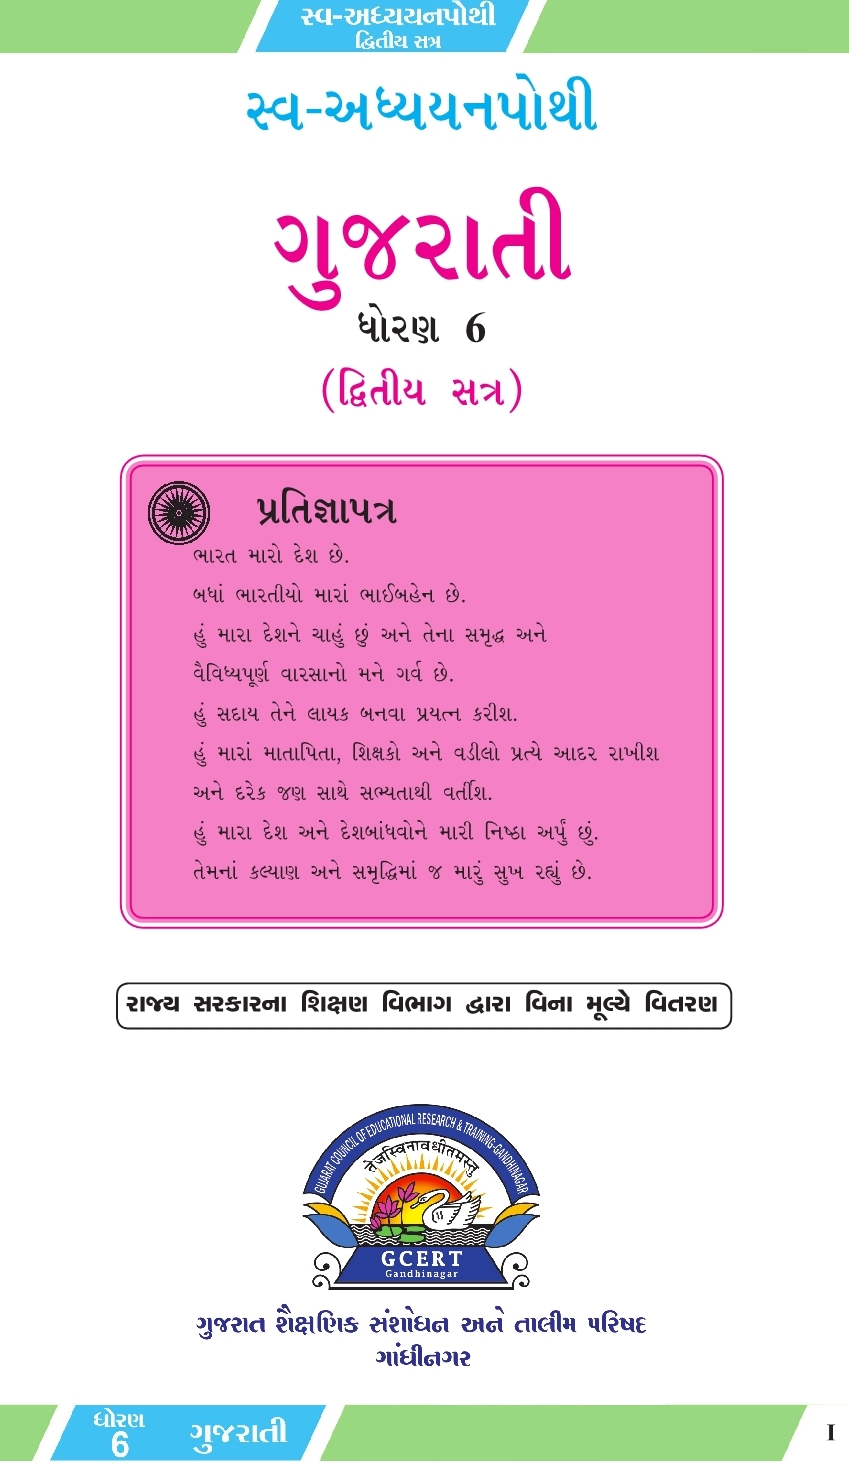 Gujarat Textbook Based Self Learning Books of First and